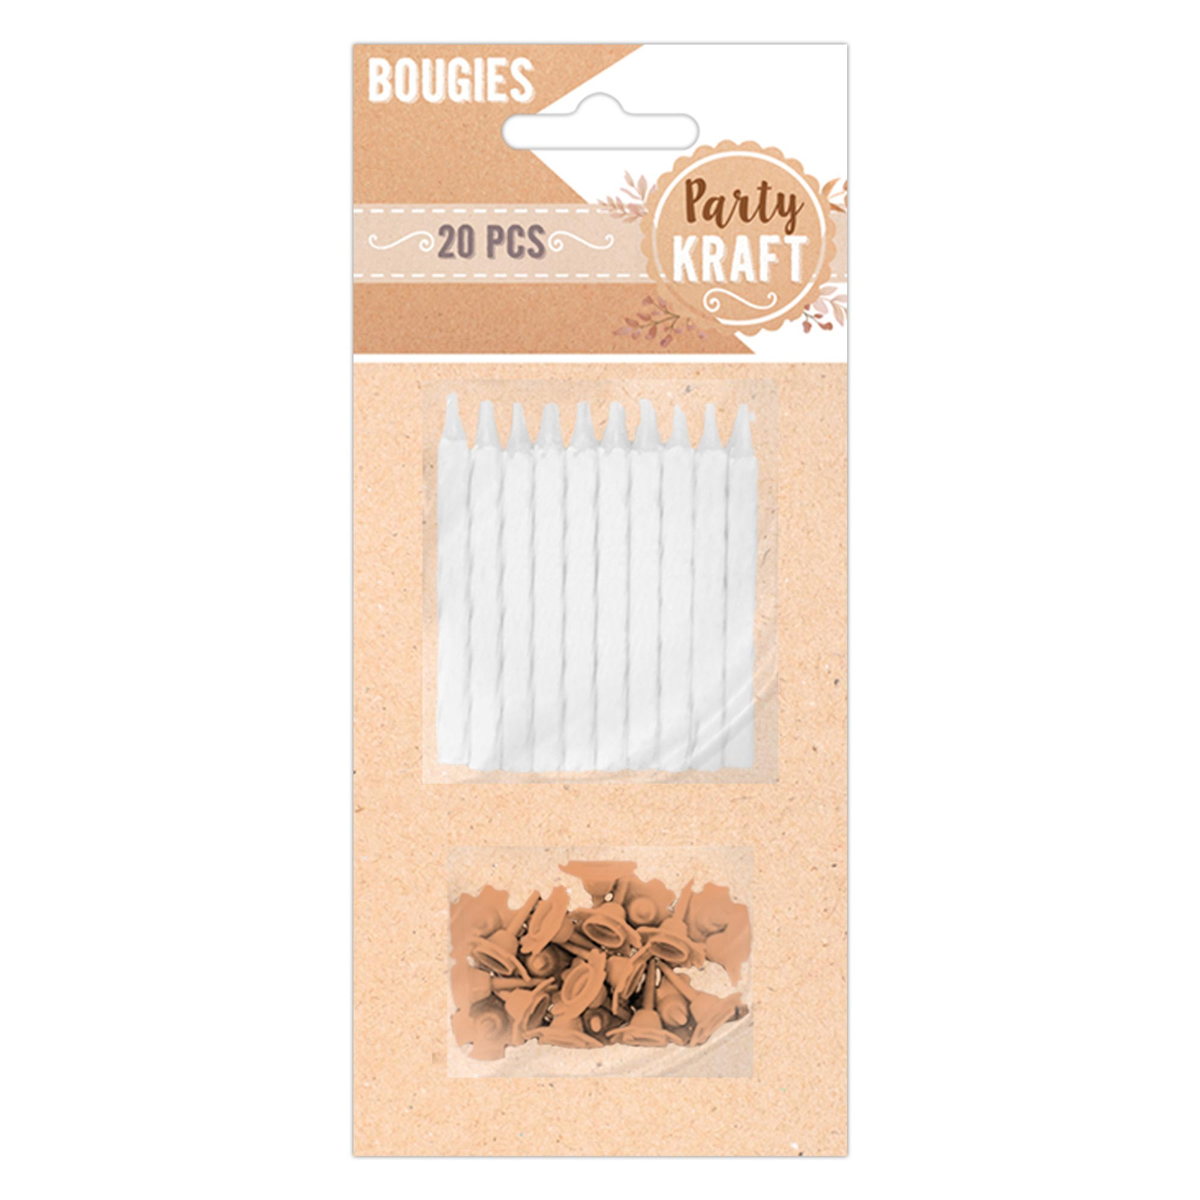 20 bougies \'Party Kraft\' blanc - 5 cm - [A0768]